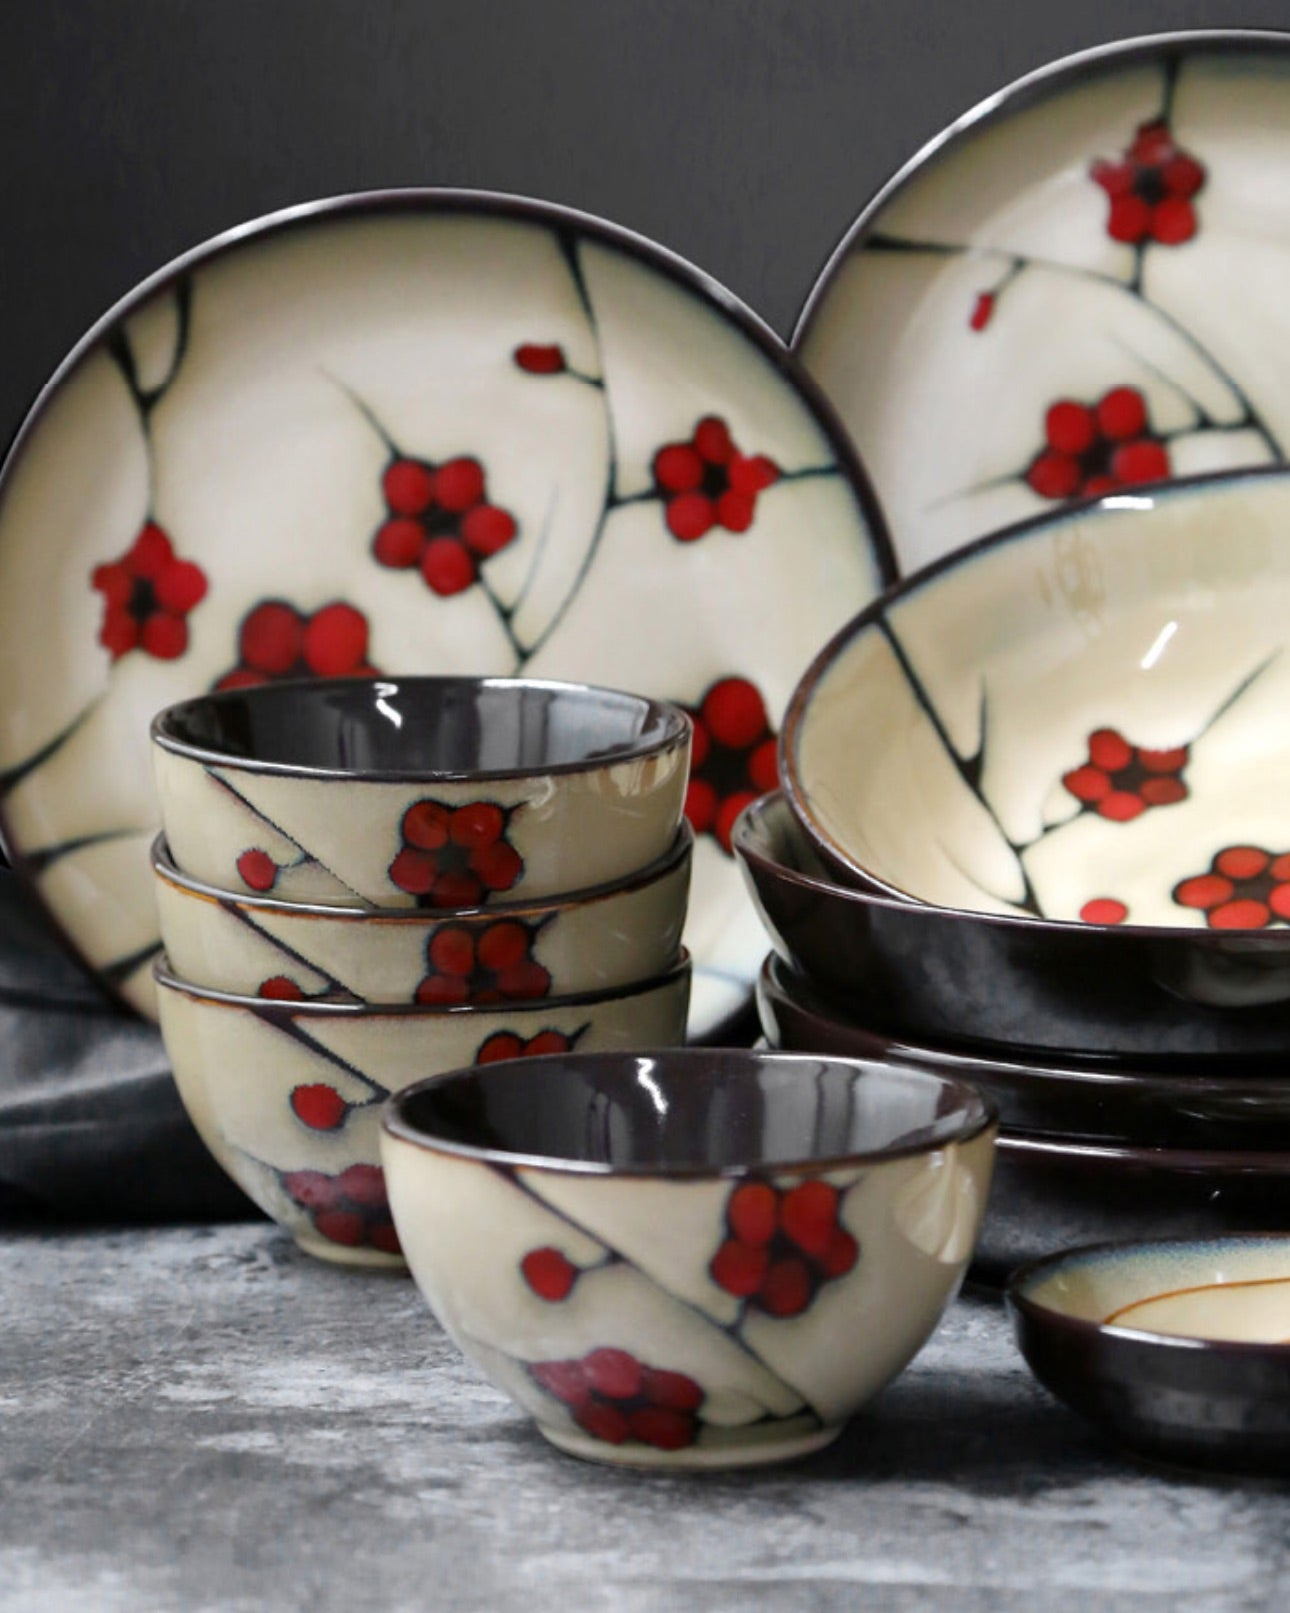 Japanese Red Plum Porcelain Bowls and Dishes Tableware Japan On-Glaze Ceramic Dinnerware Dinner Sets JPN Style J